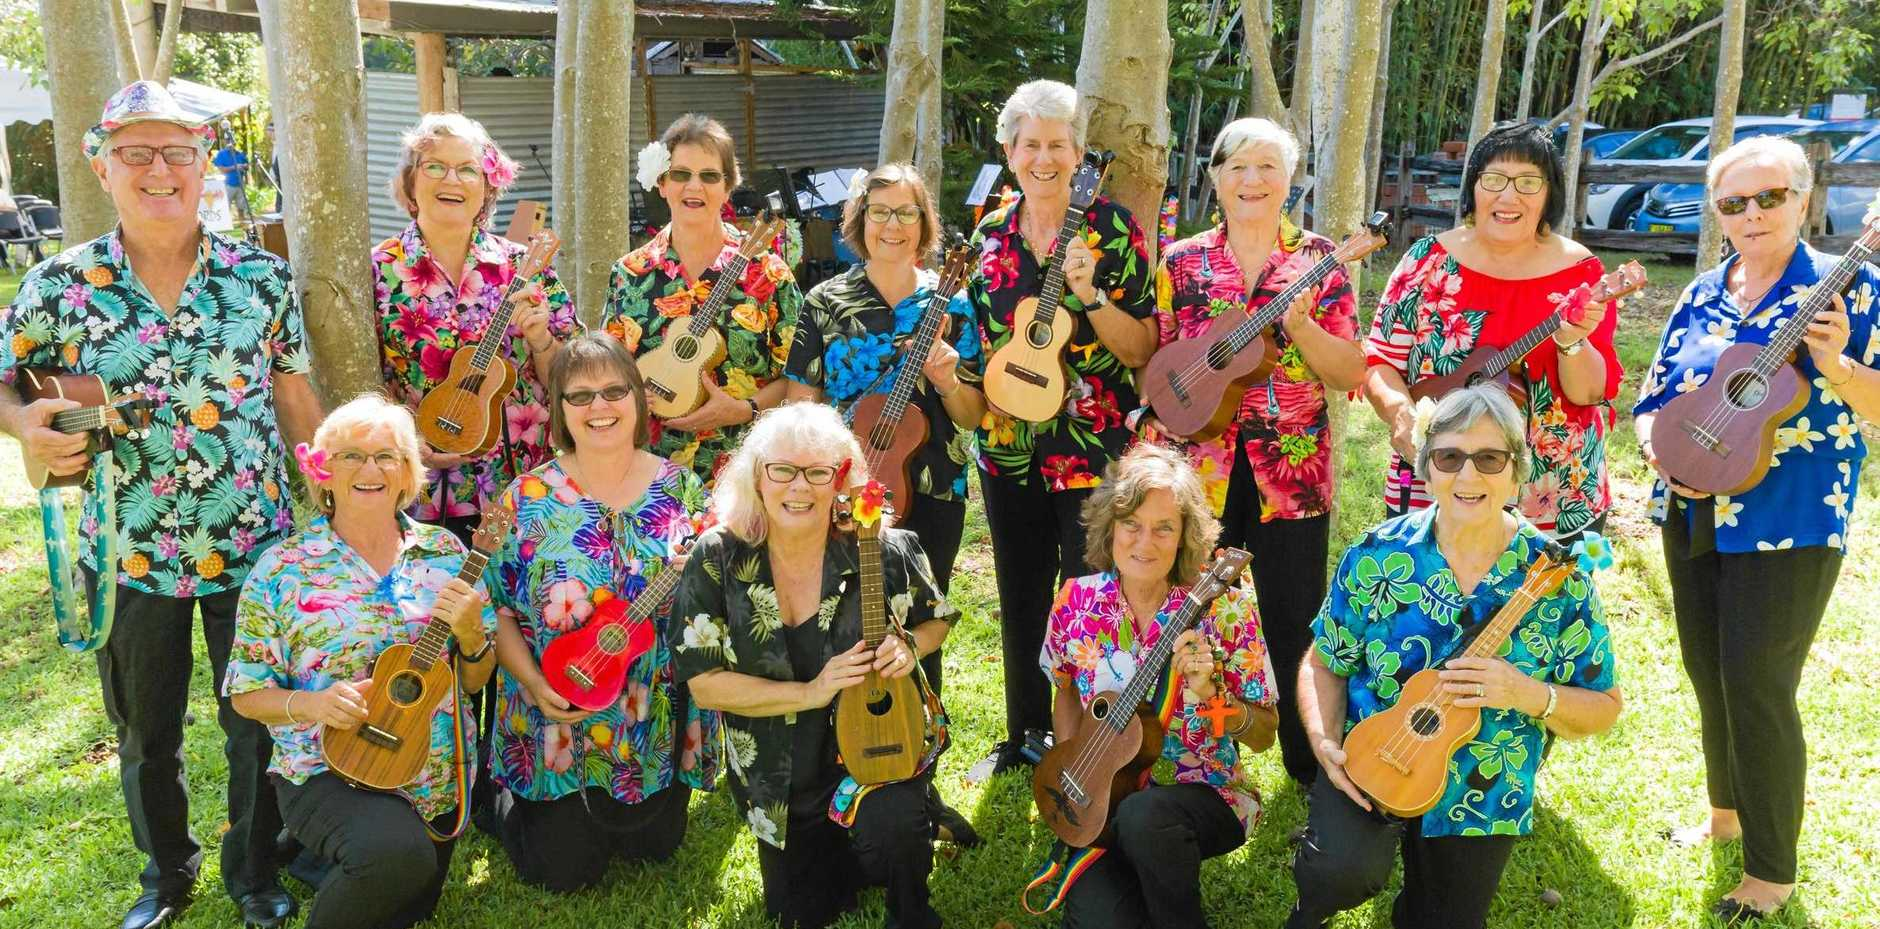 Khristina Joy and the Z Chords an enthusiastic and talented group of singers and ukulele players, Douglas Vale Historic Homestead and Vineyard will host a Garden Party with a difference as part of National Gardening Week - October 13-19.